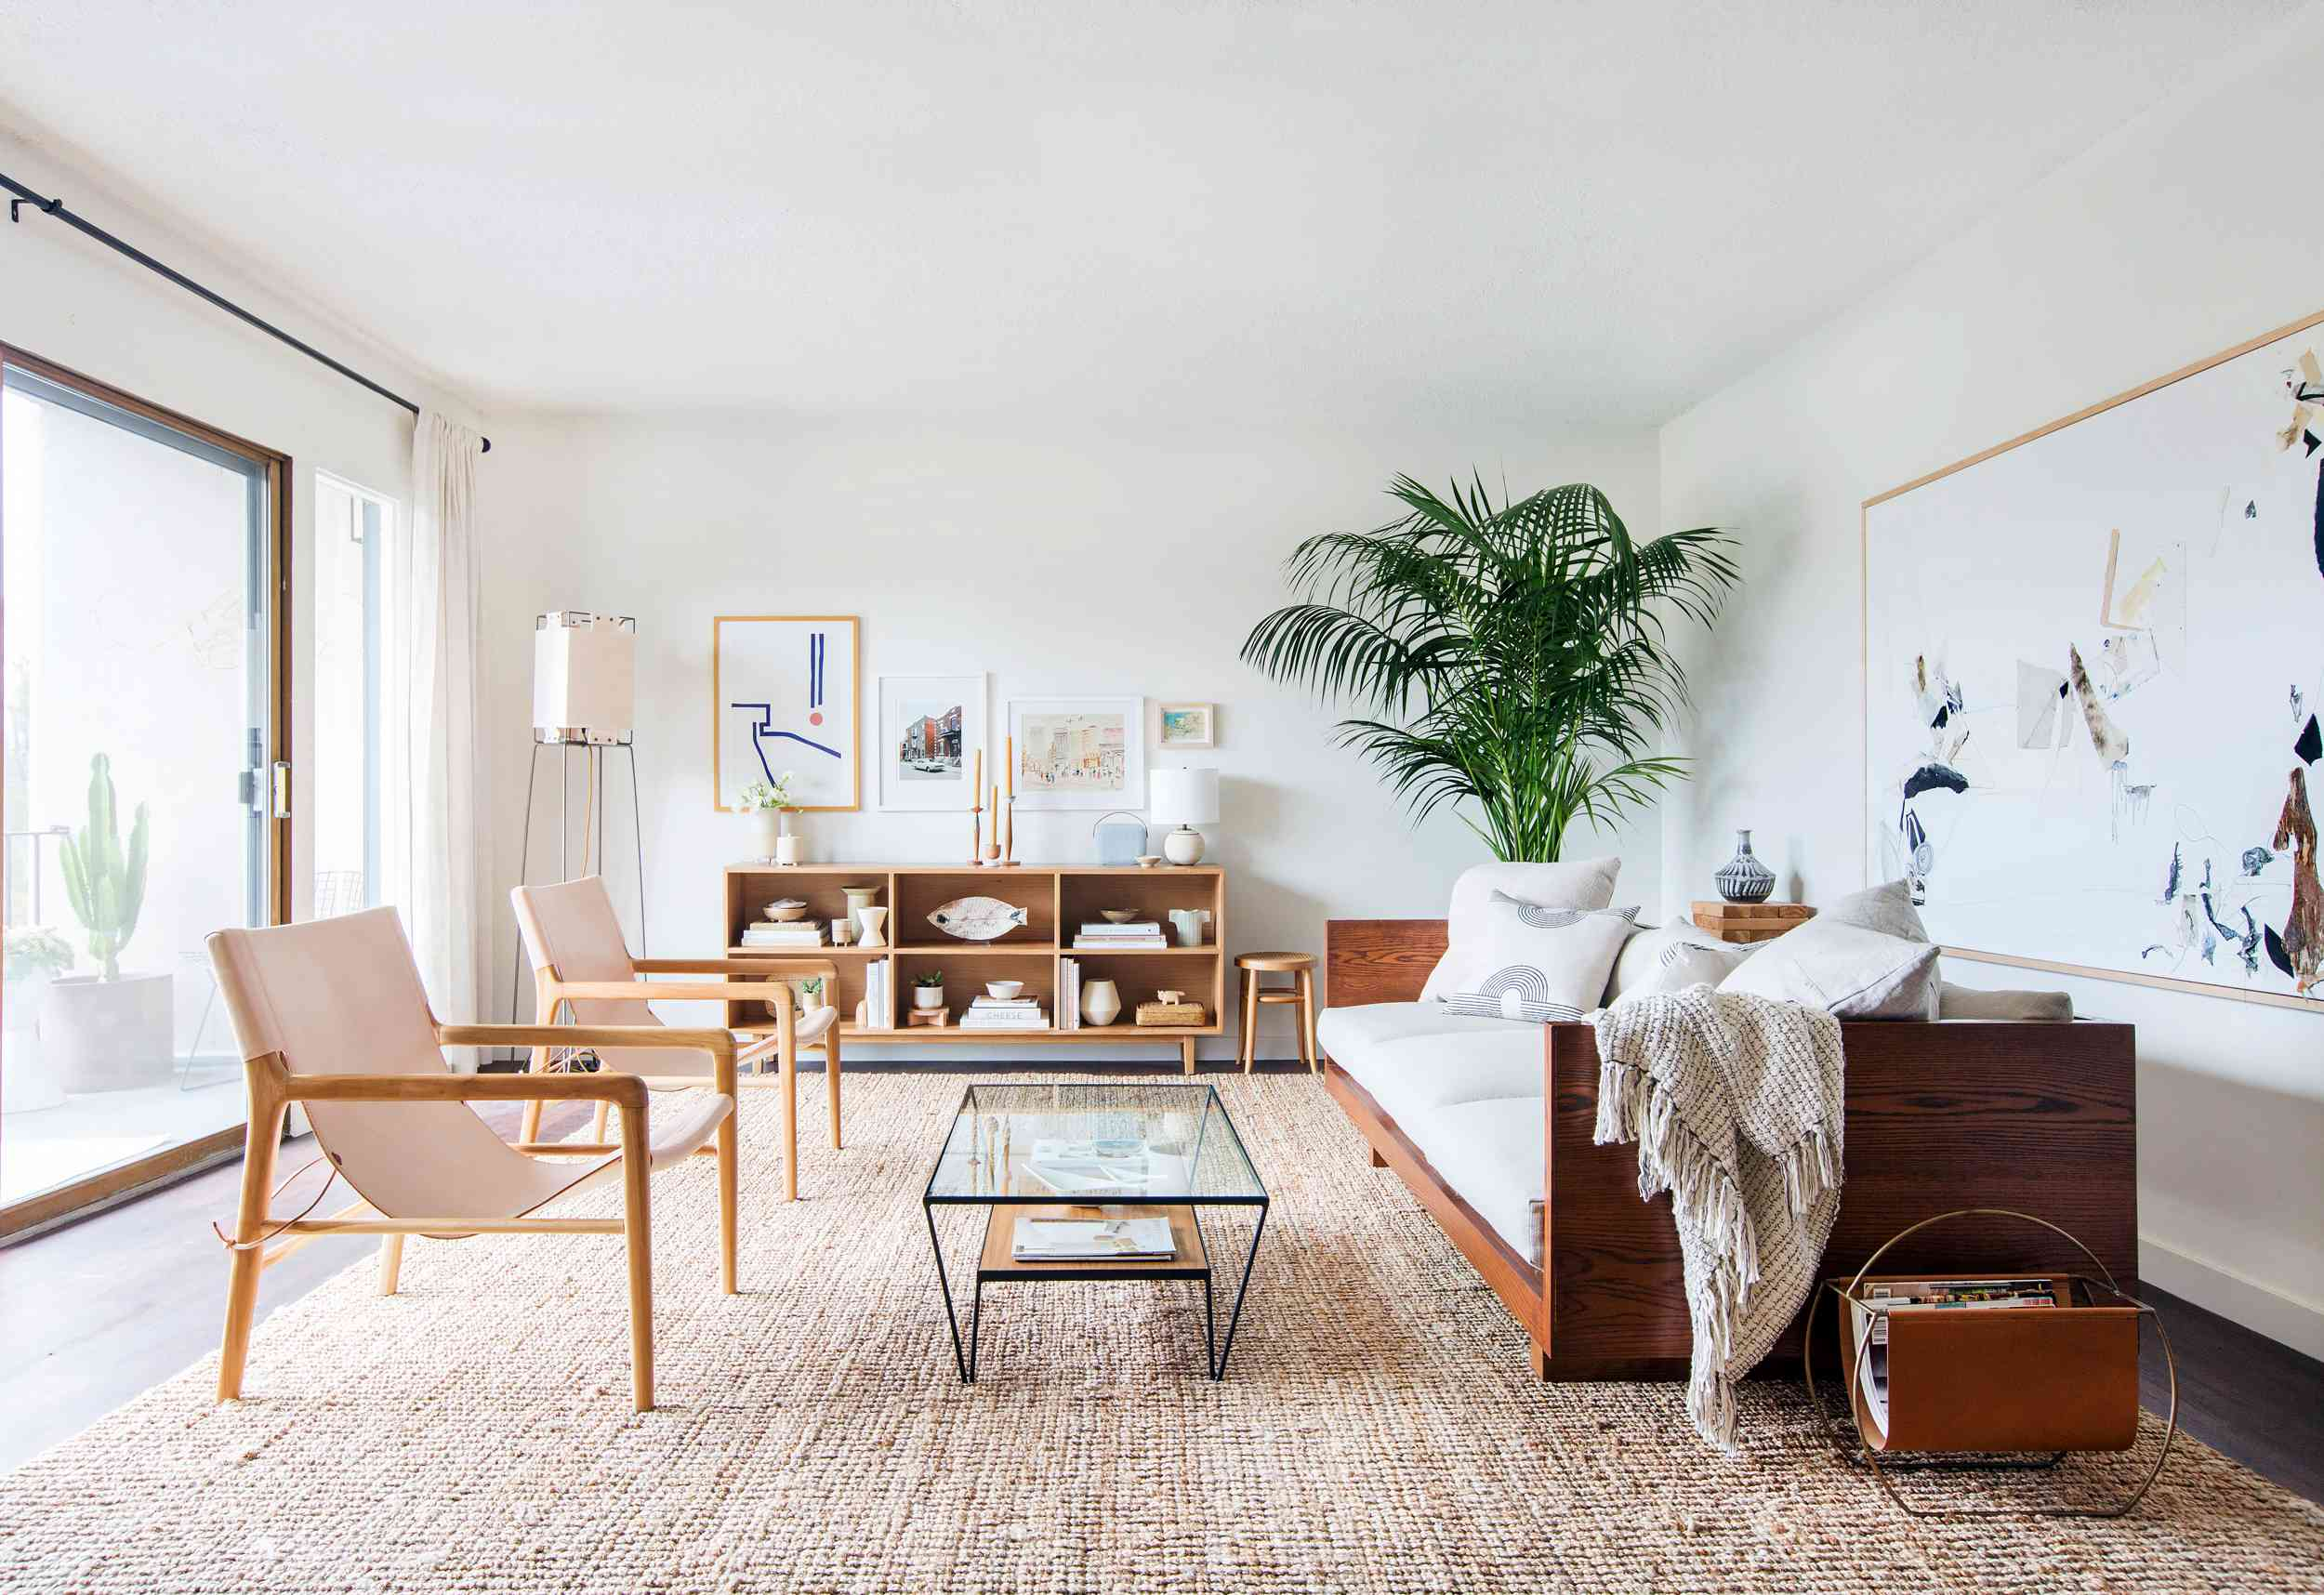 15 Midcentury Modern Decor And Design Ideas